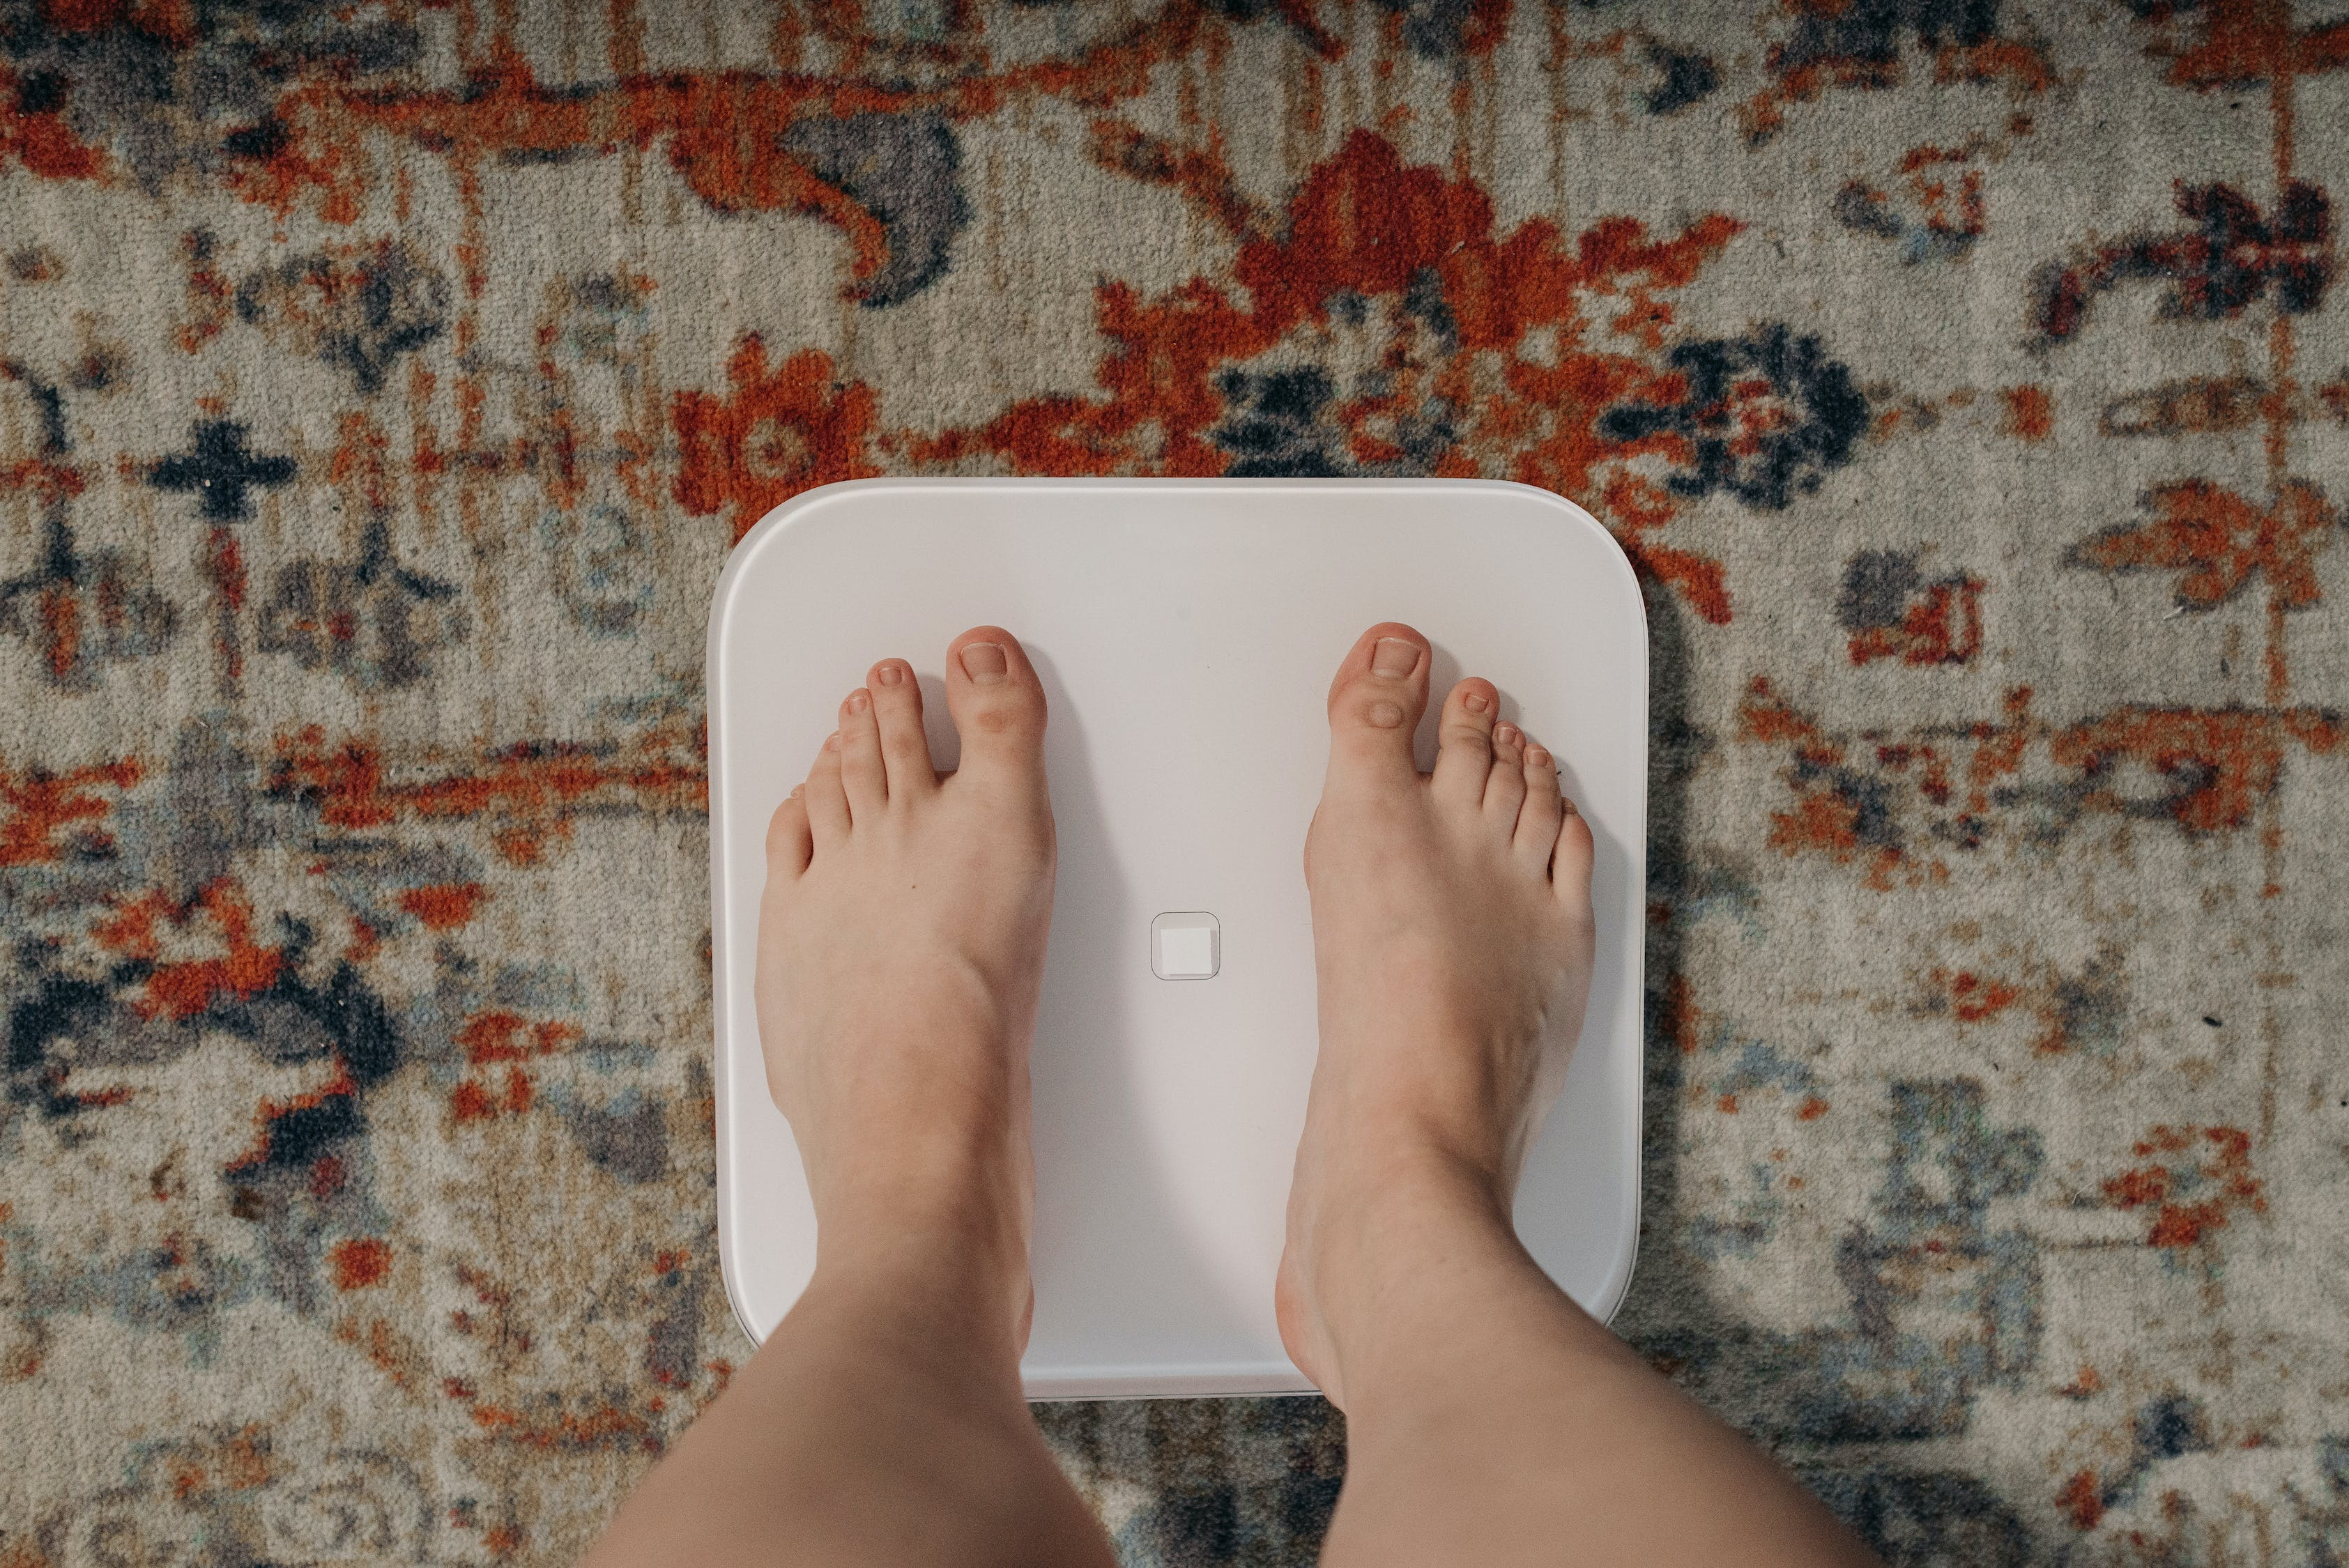 Struggling to maintain or change your weight? Have you discussed prescription weight medication with your doctor?